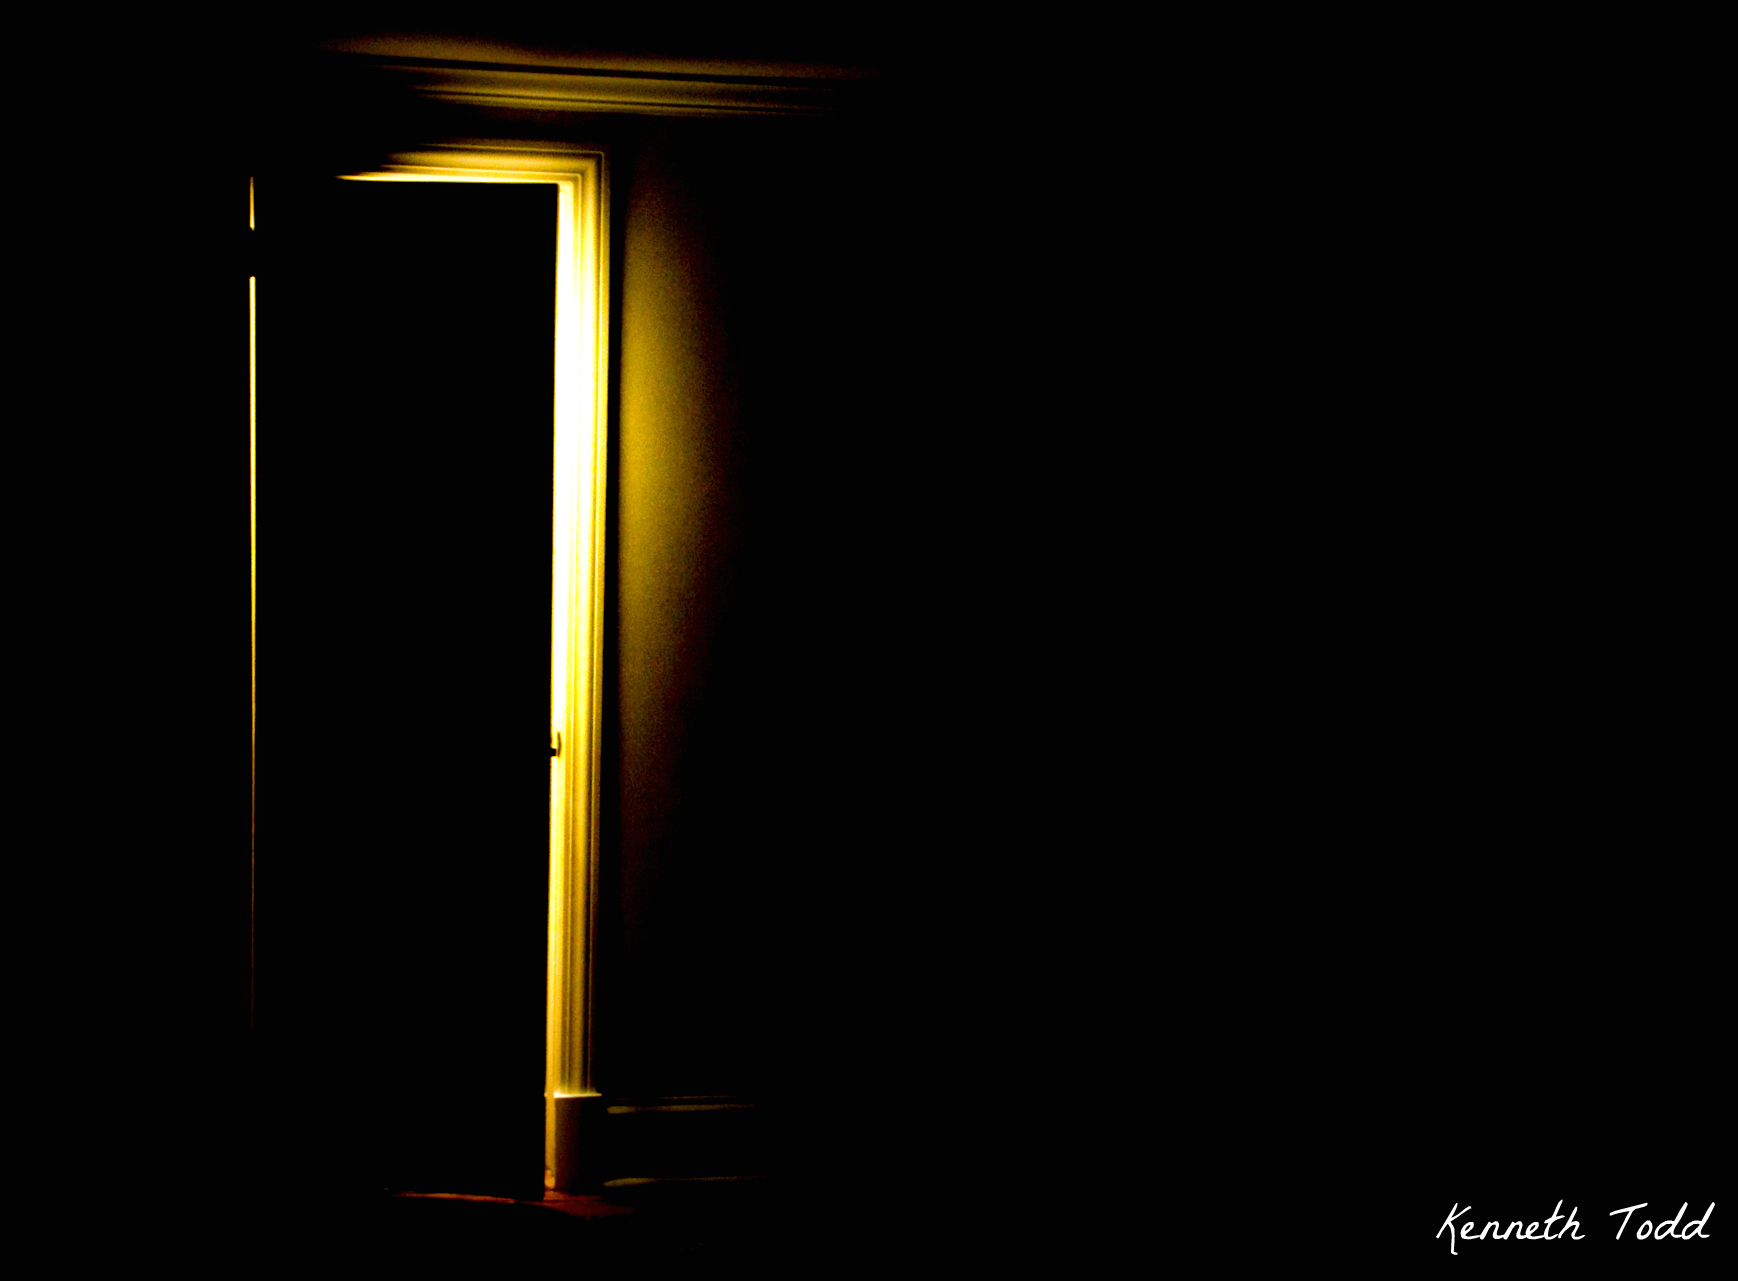 Light Behind the Door – April 23 « Project 365 by Kenneth Todd